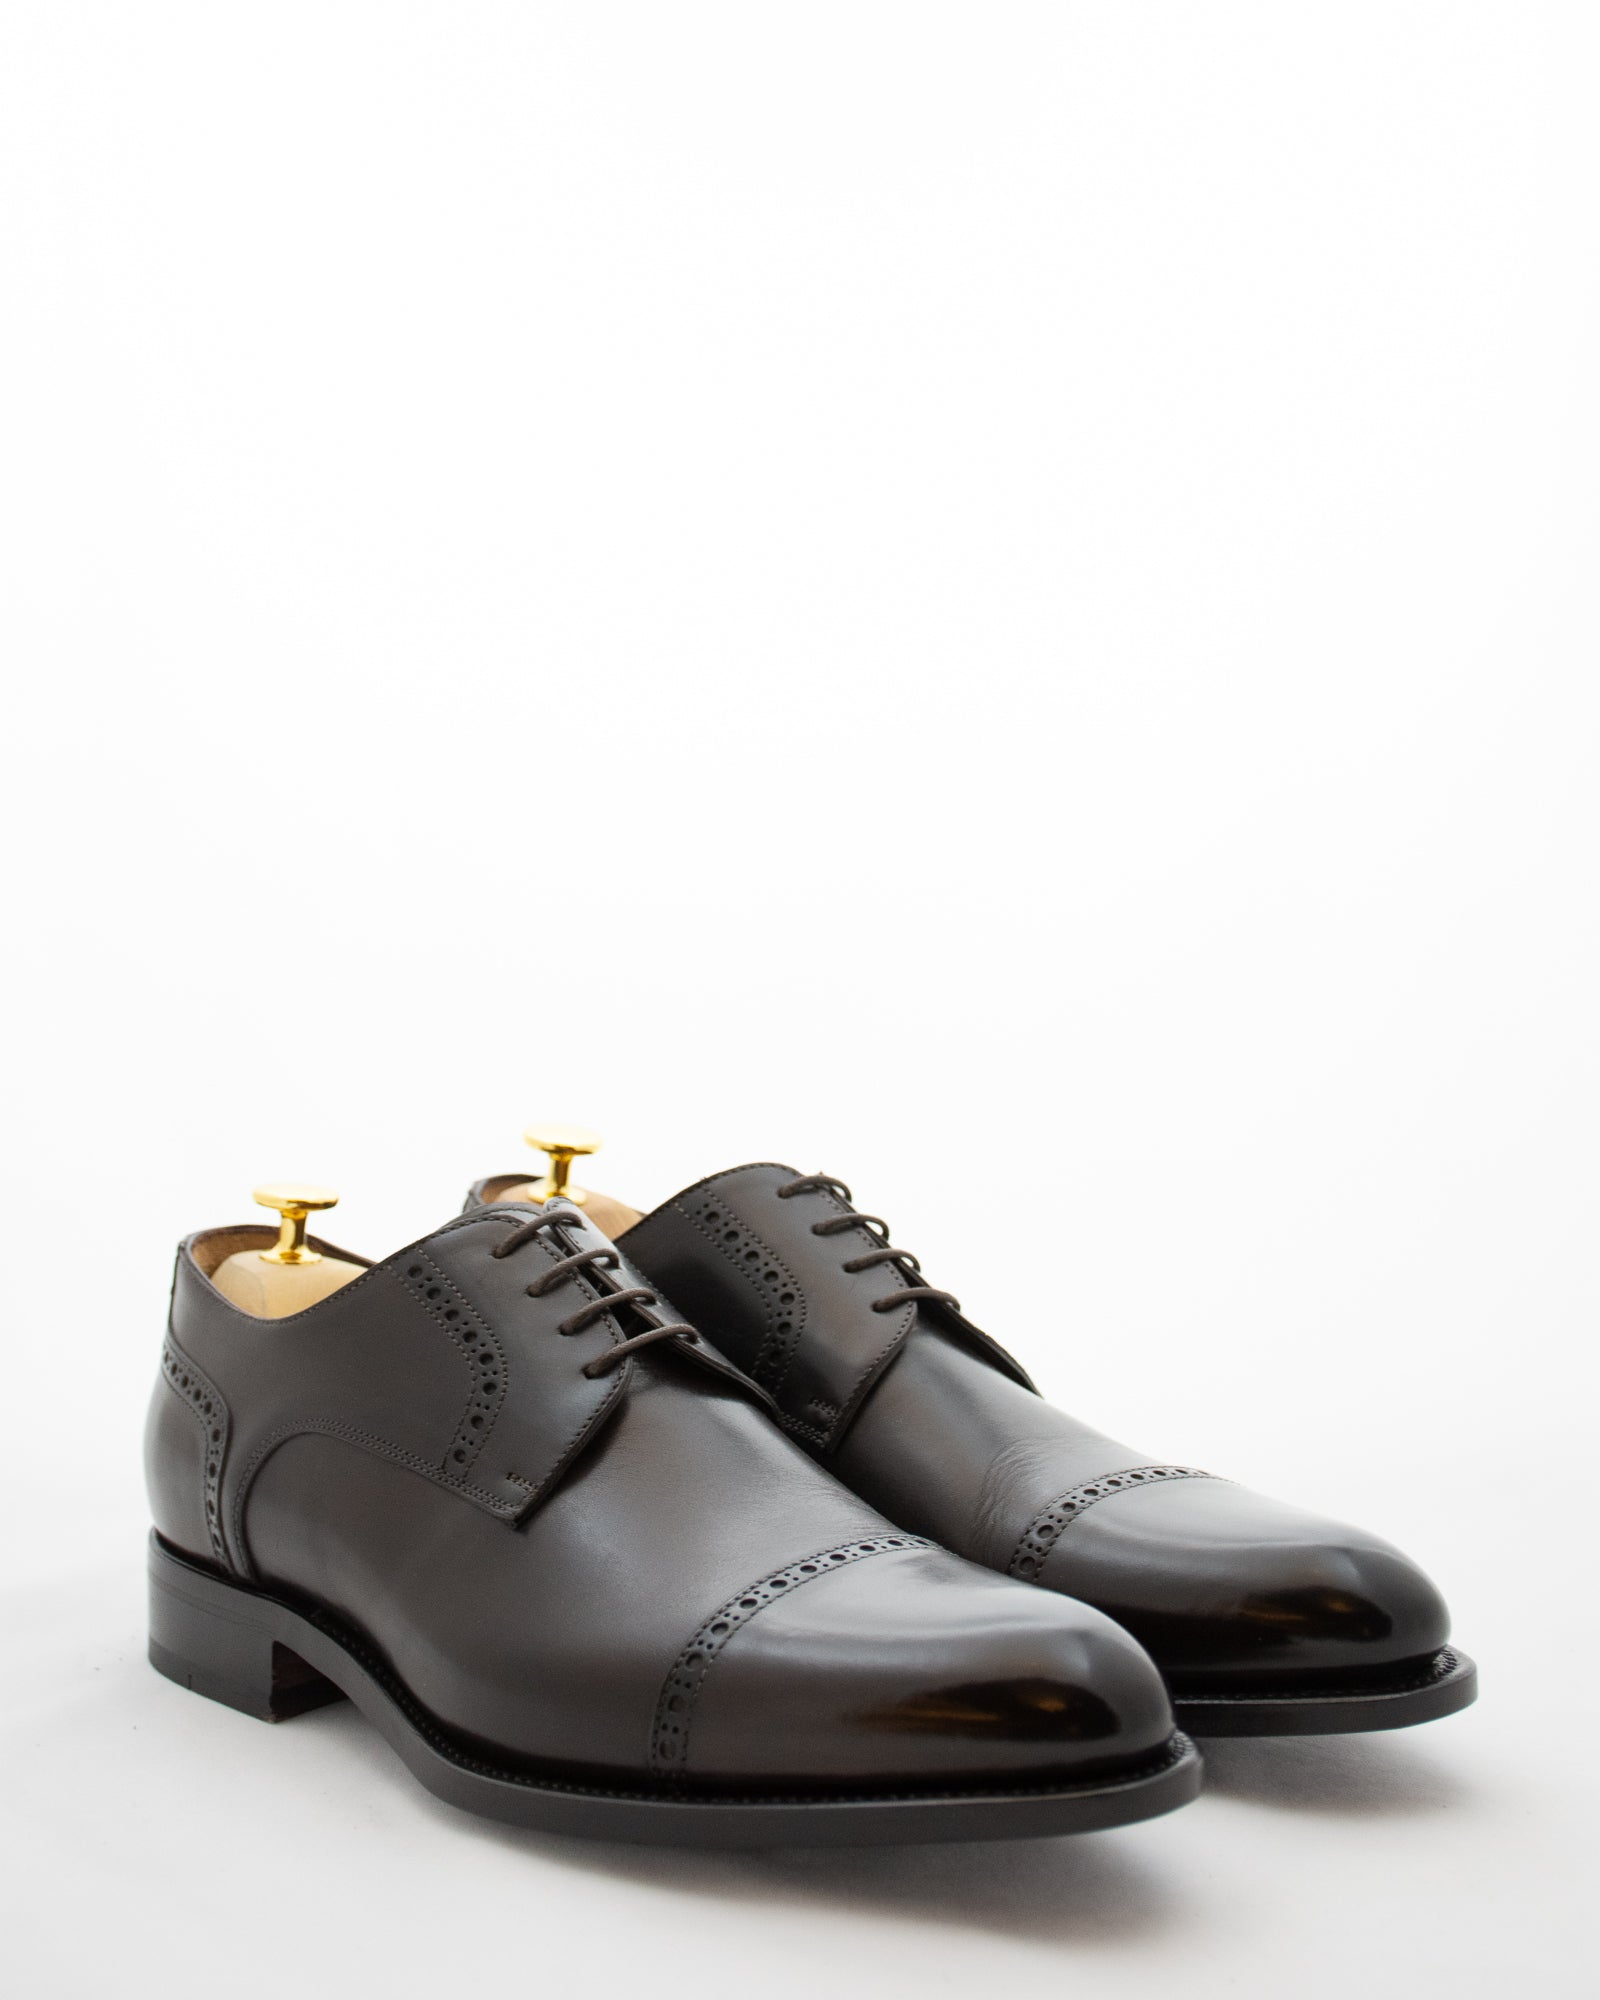 ISAIA Cap Toe Lace Up Brogue